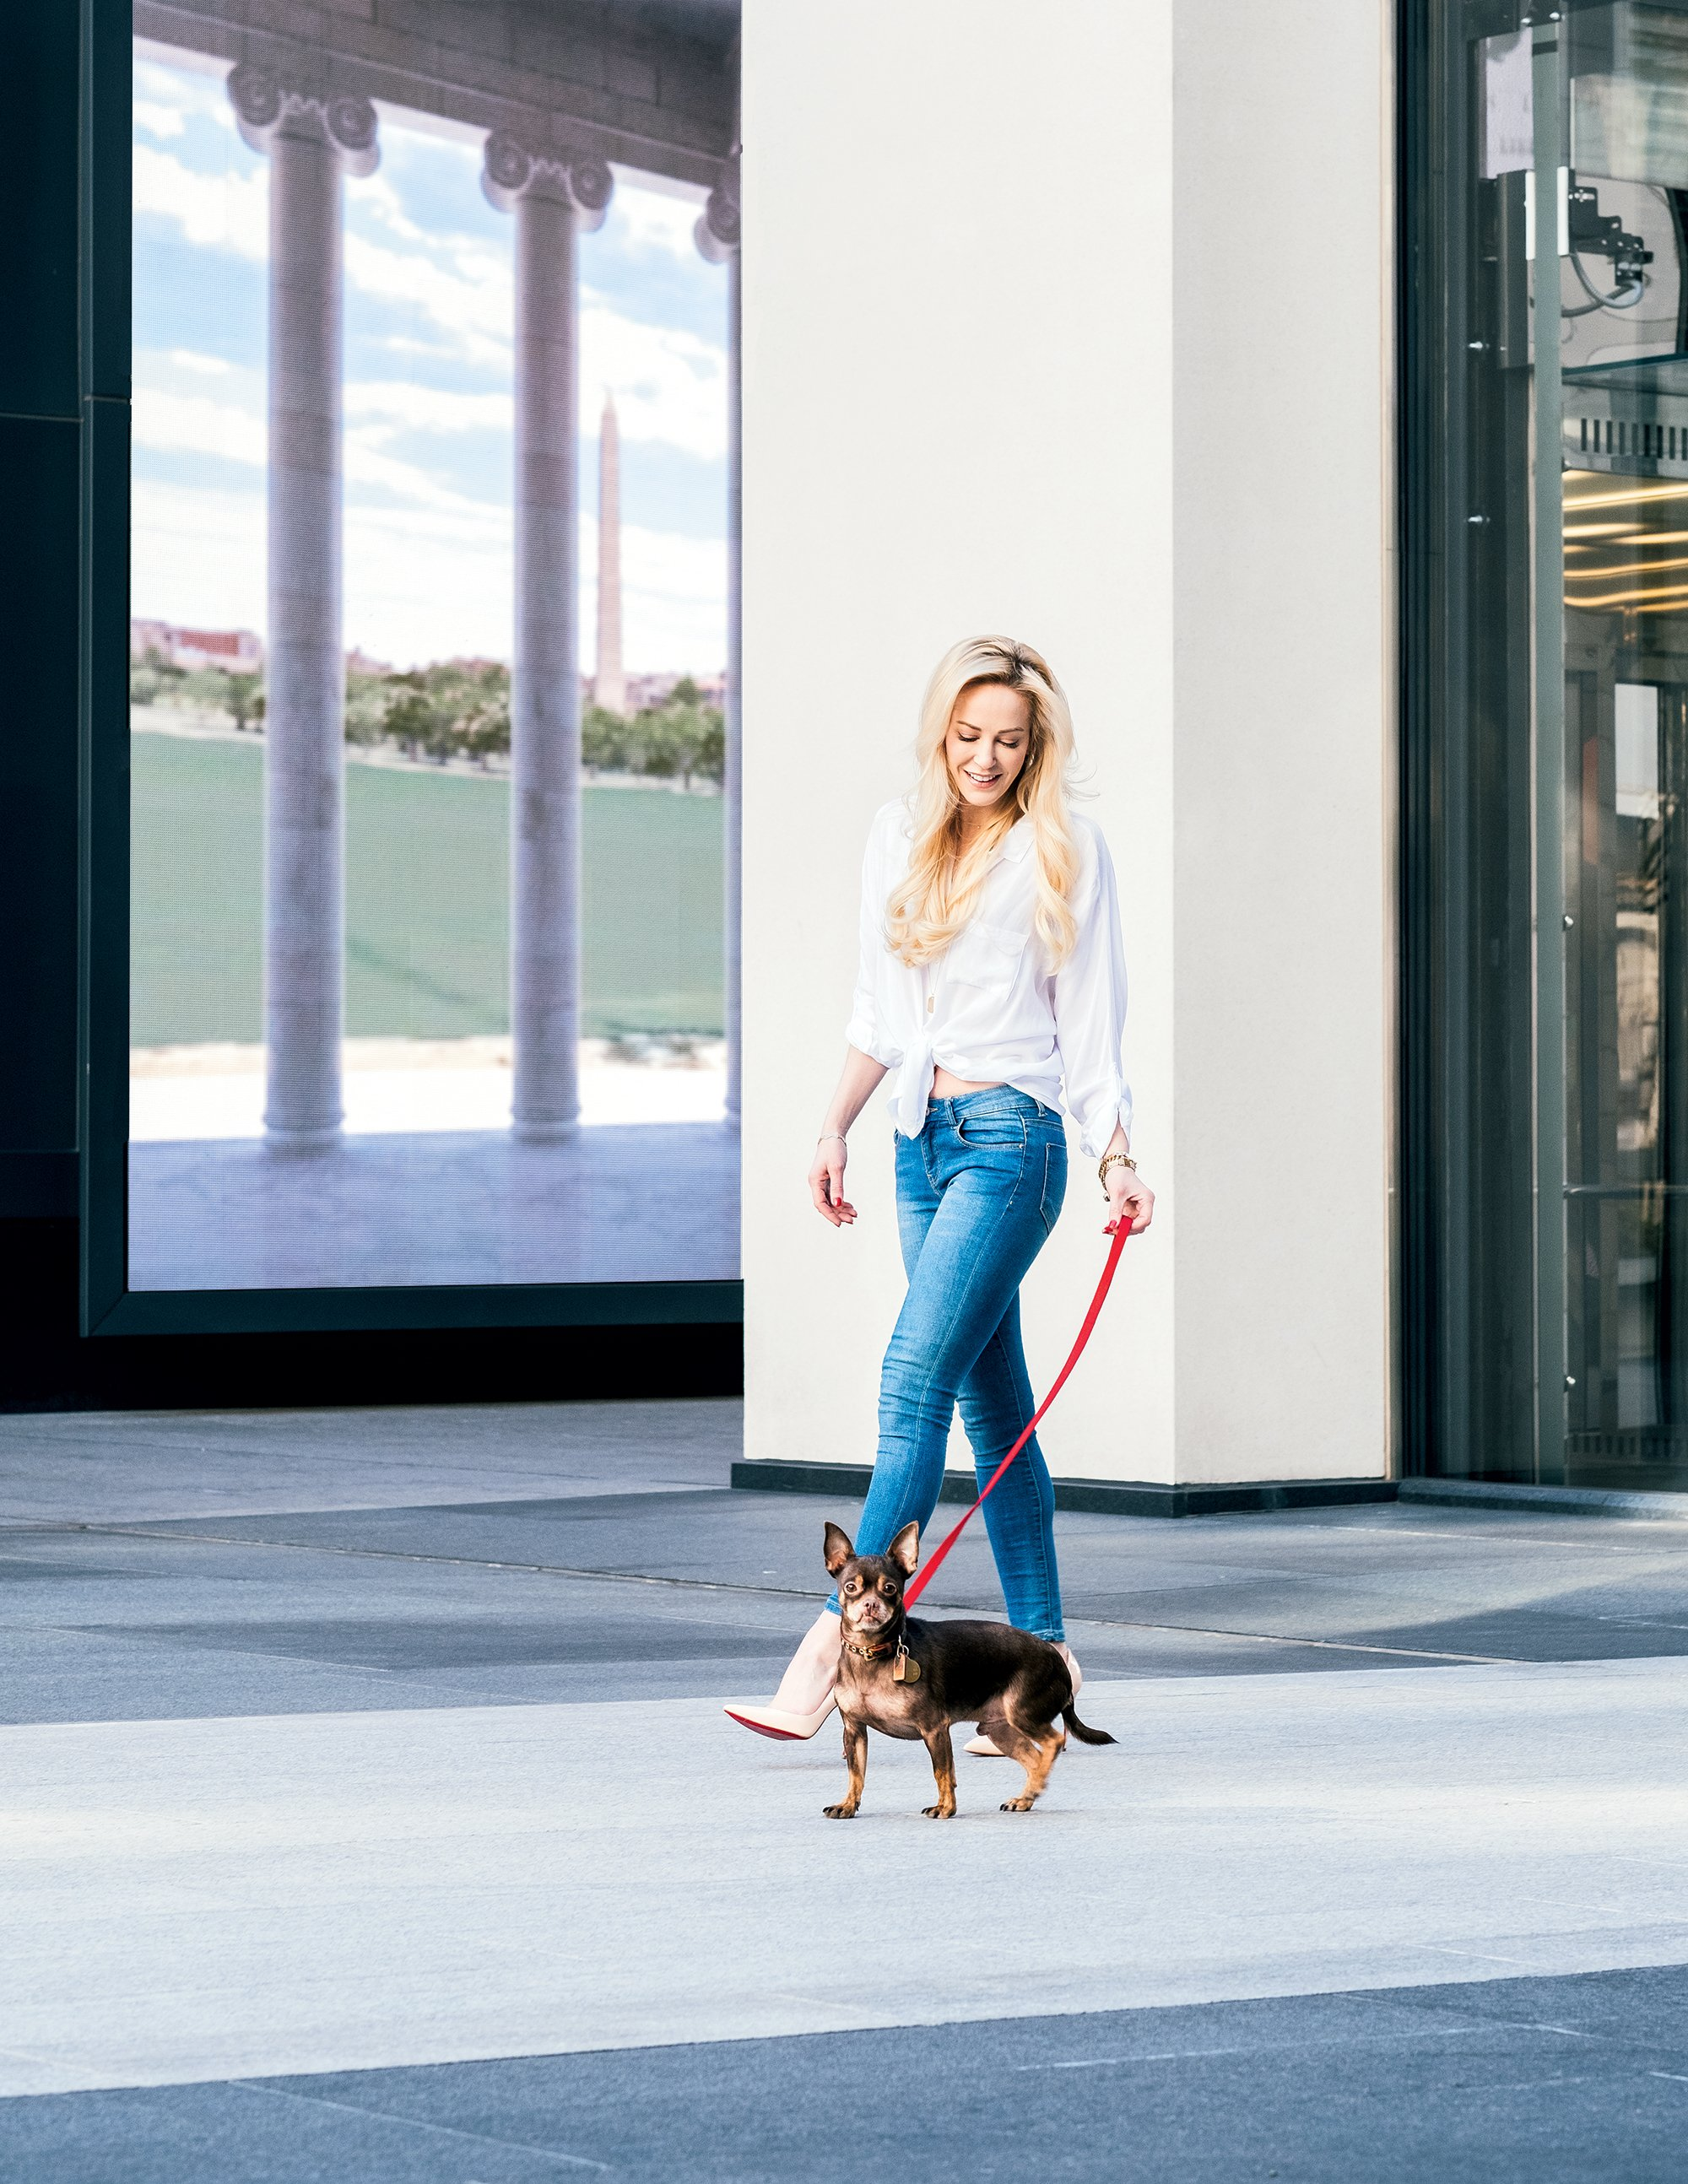 Linton walks her dog at CityCenterDC. Photograph by Marisa Guzman-Aloia.